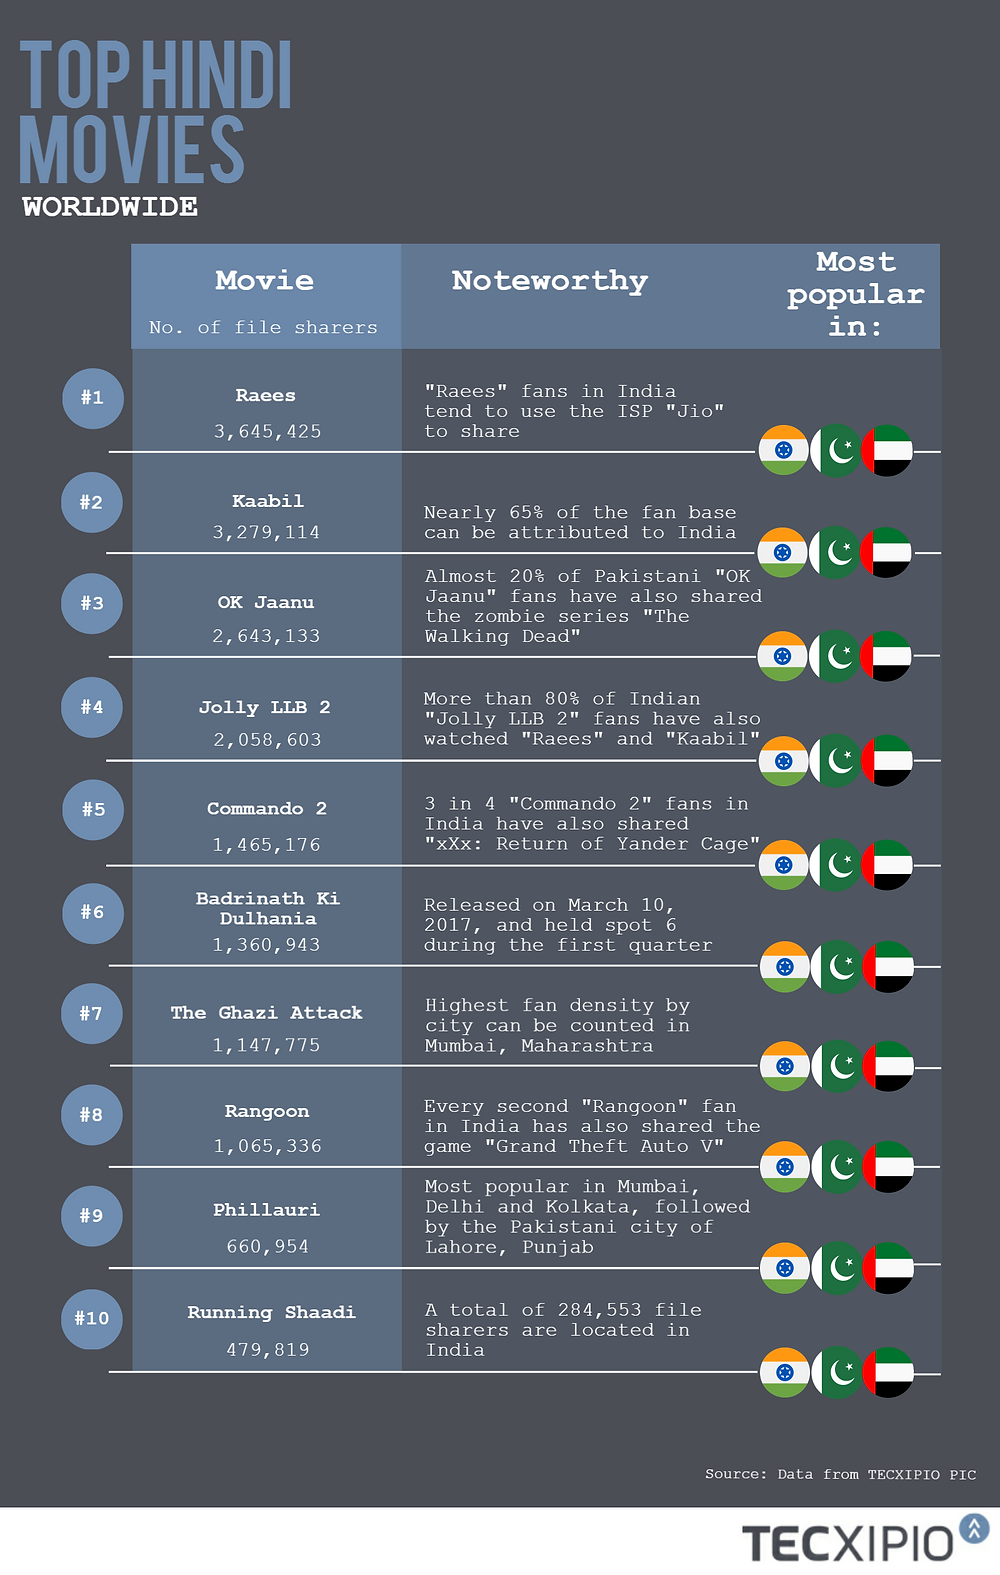 The TECXIPIO infographic. The top 10 Hindi movies Q1/2017.